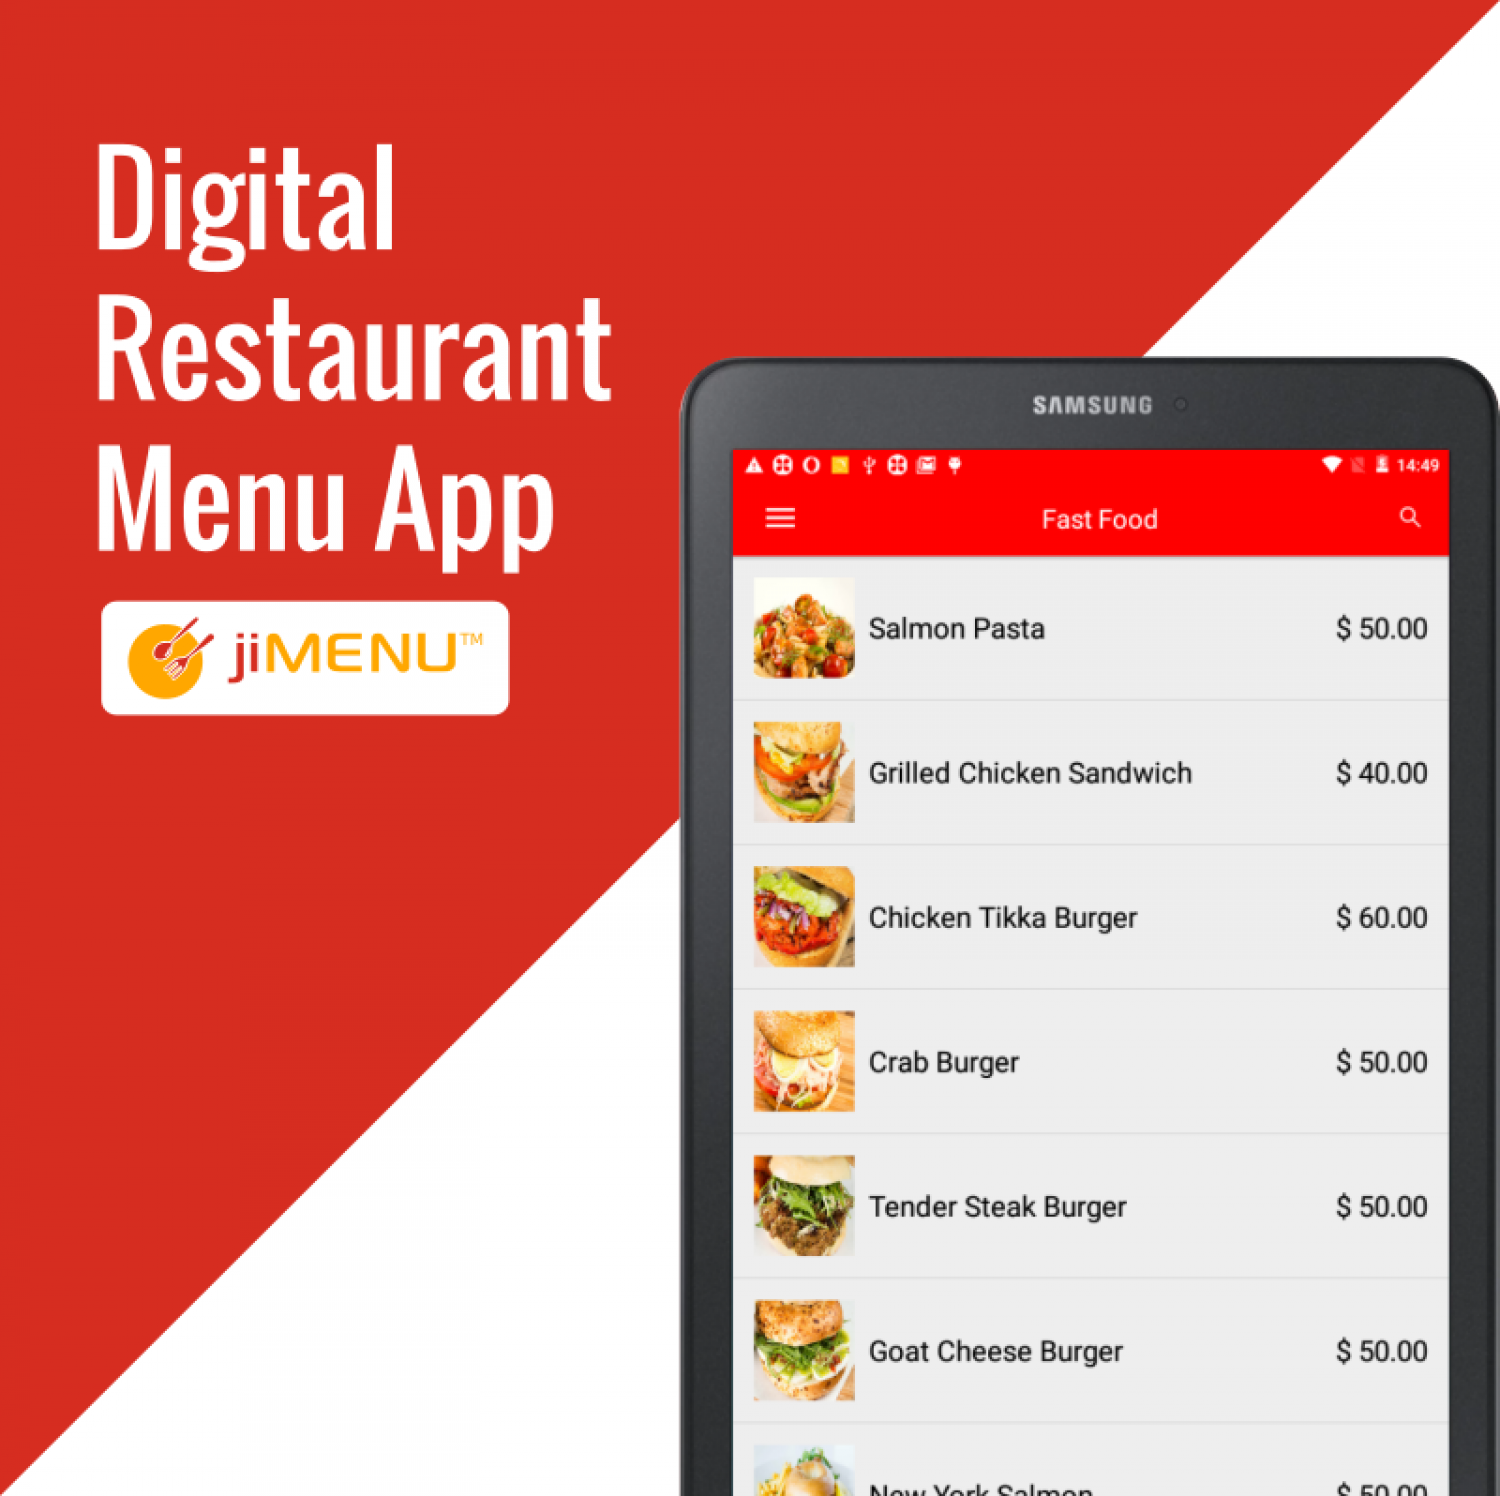 Swipe-Up Your Meal with Digital Menu App  Infographic